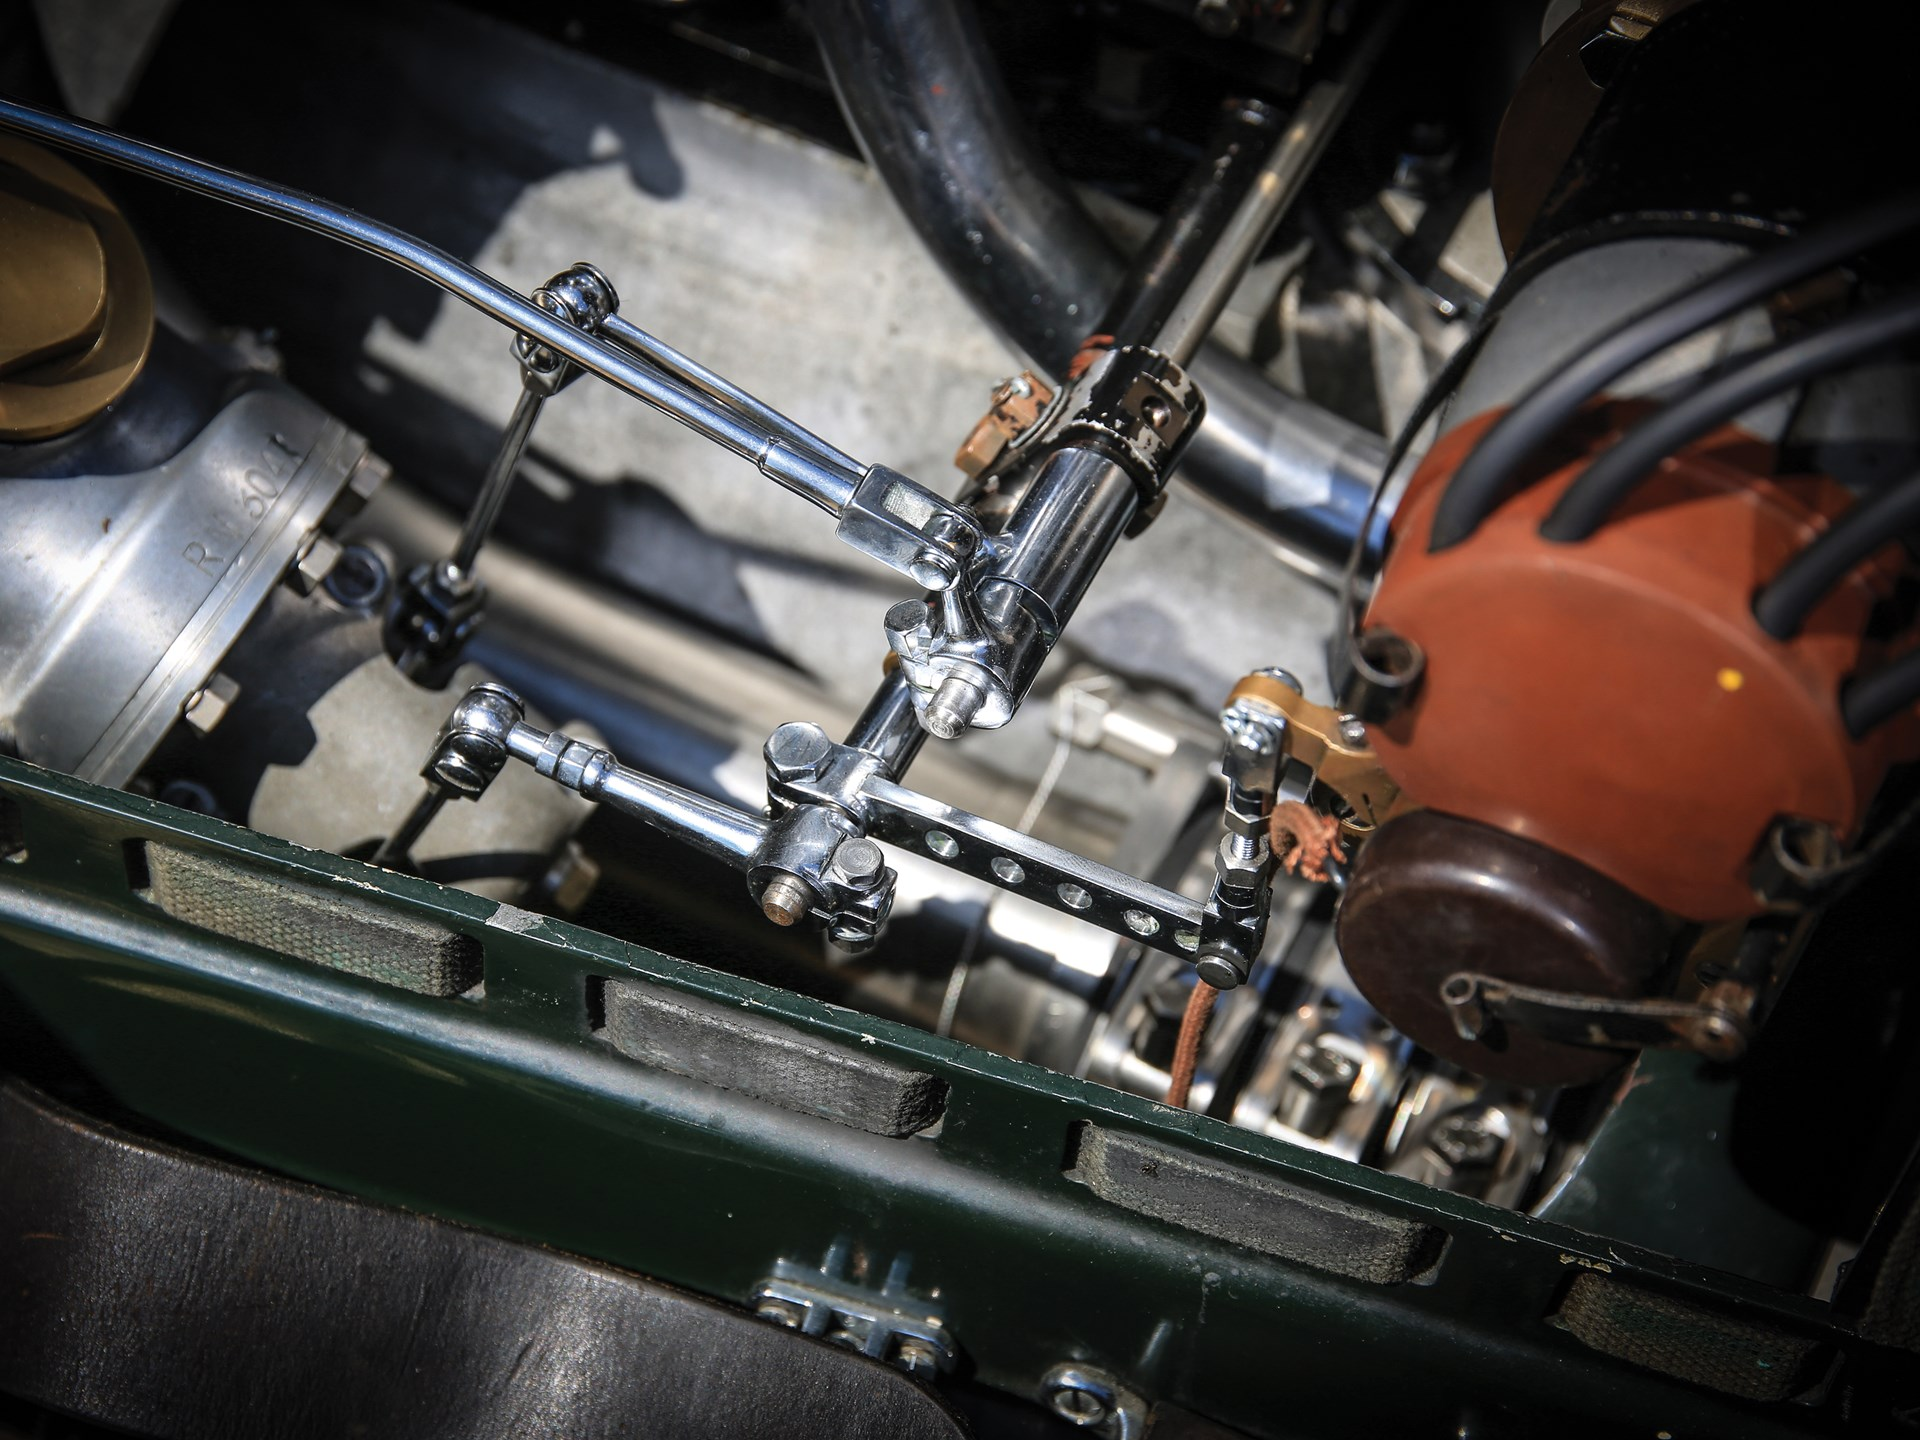 RM Sotheby's - 1929 Bentley 4½-Litre Supercharged Tourer